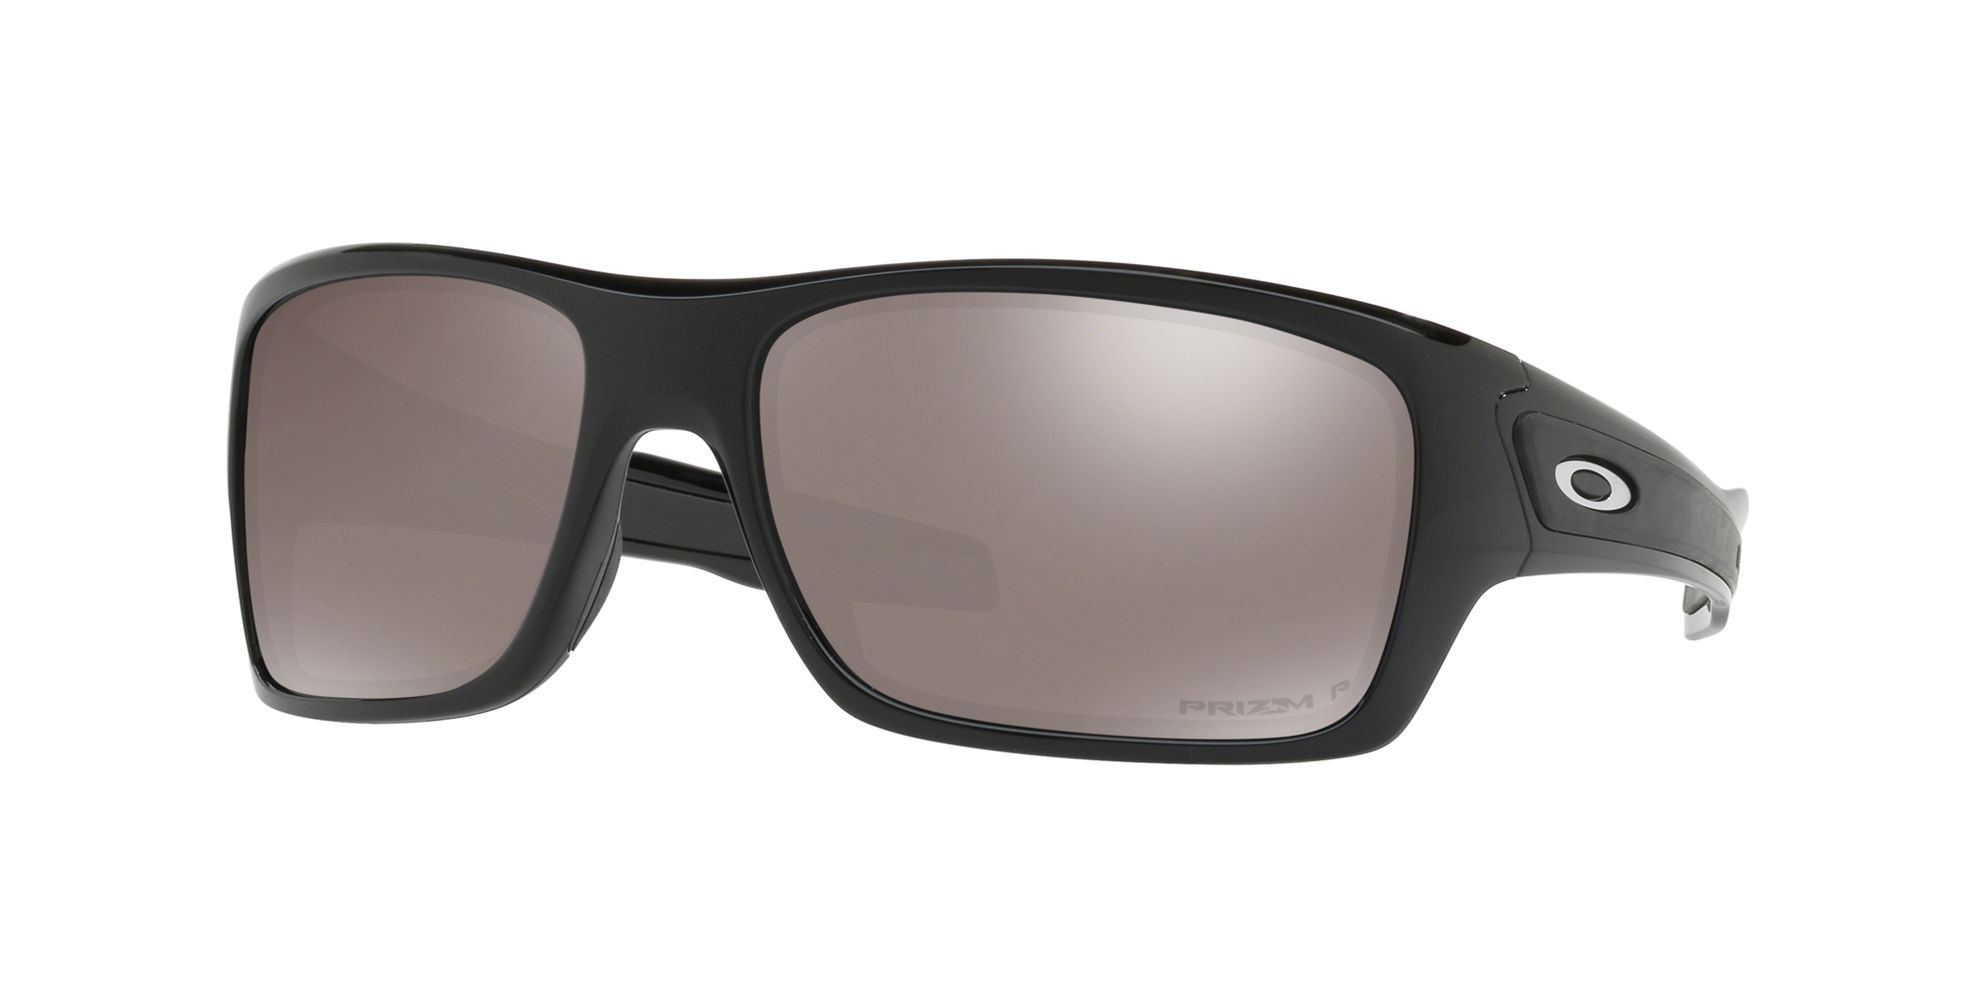 Vision In Style - Choose from various designer sunglasses ... 2f771906d88